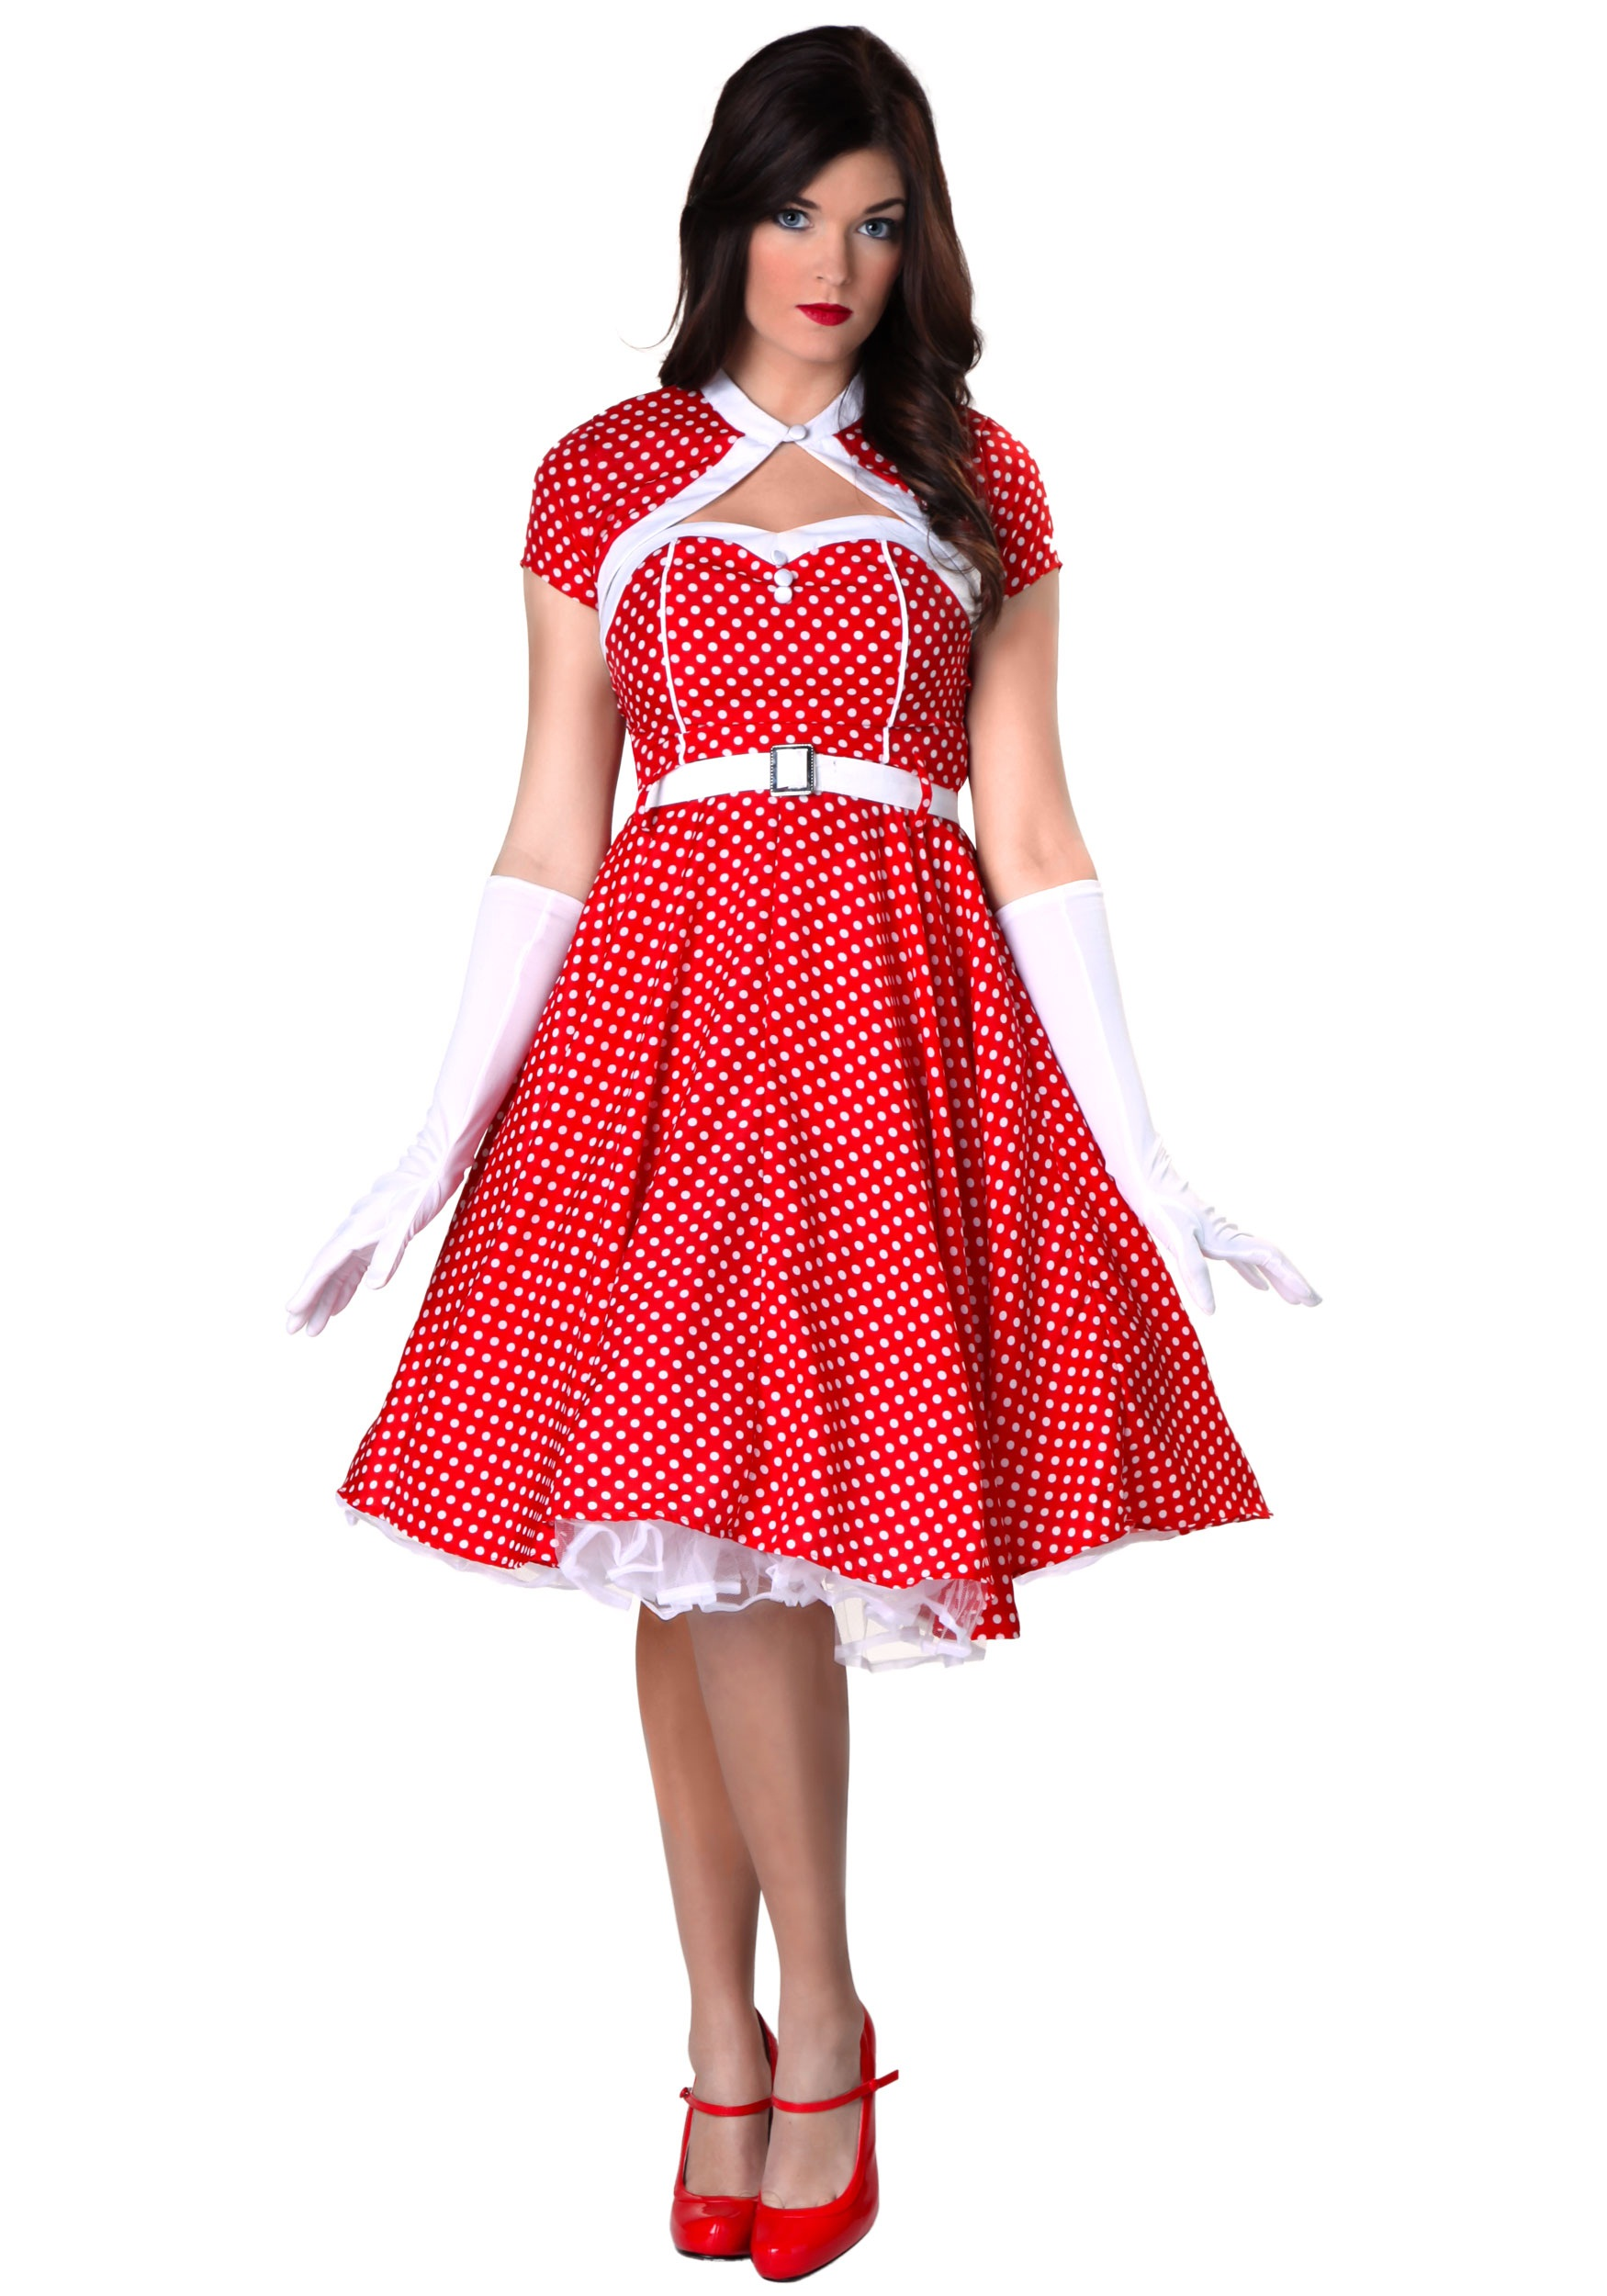 Fifties Clothes | 50s Housewife Costume | 50s Attire